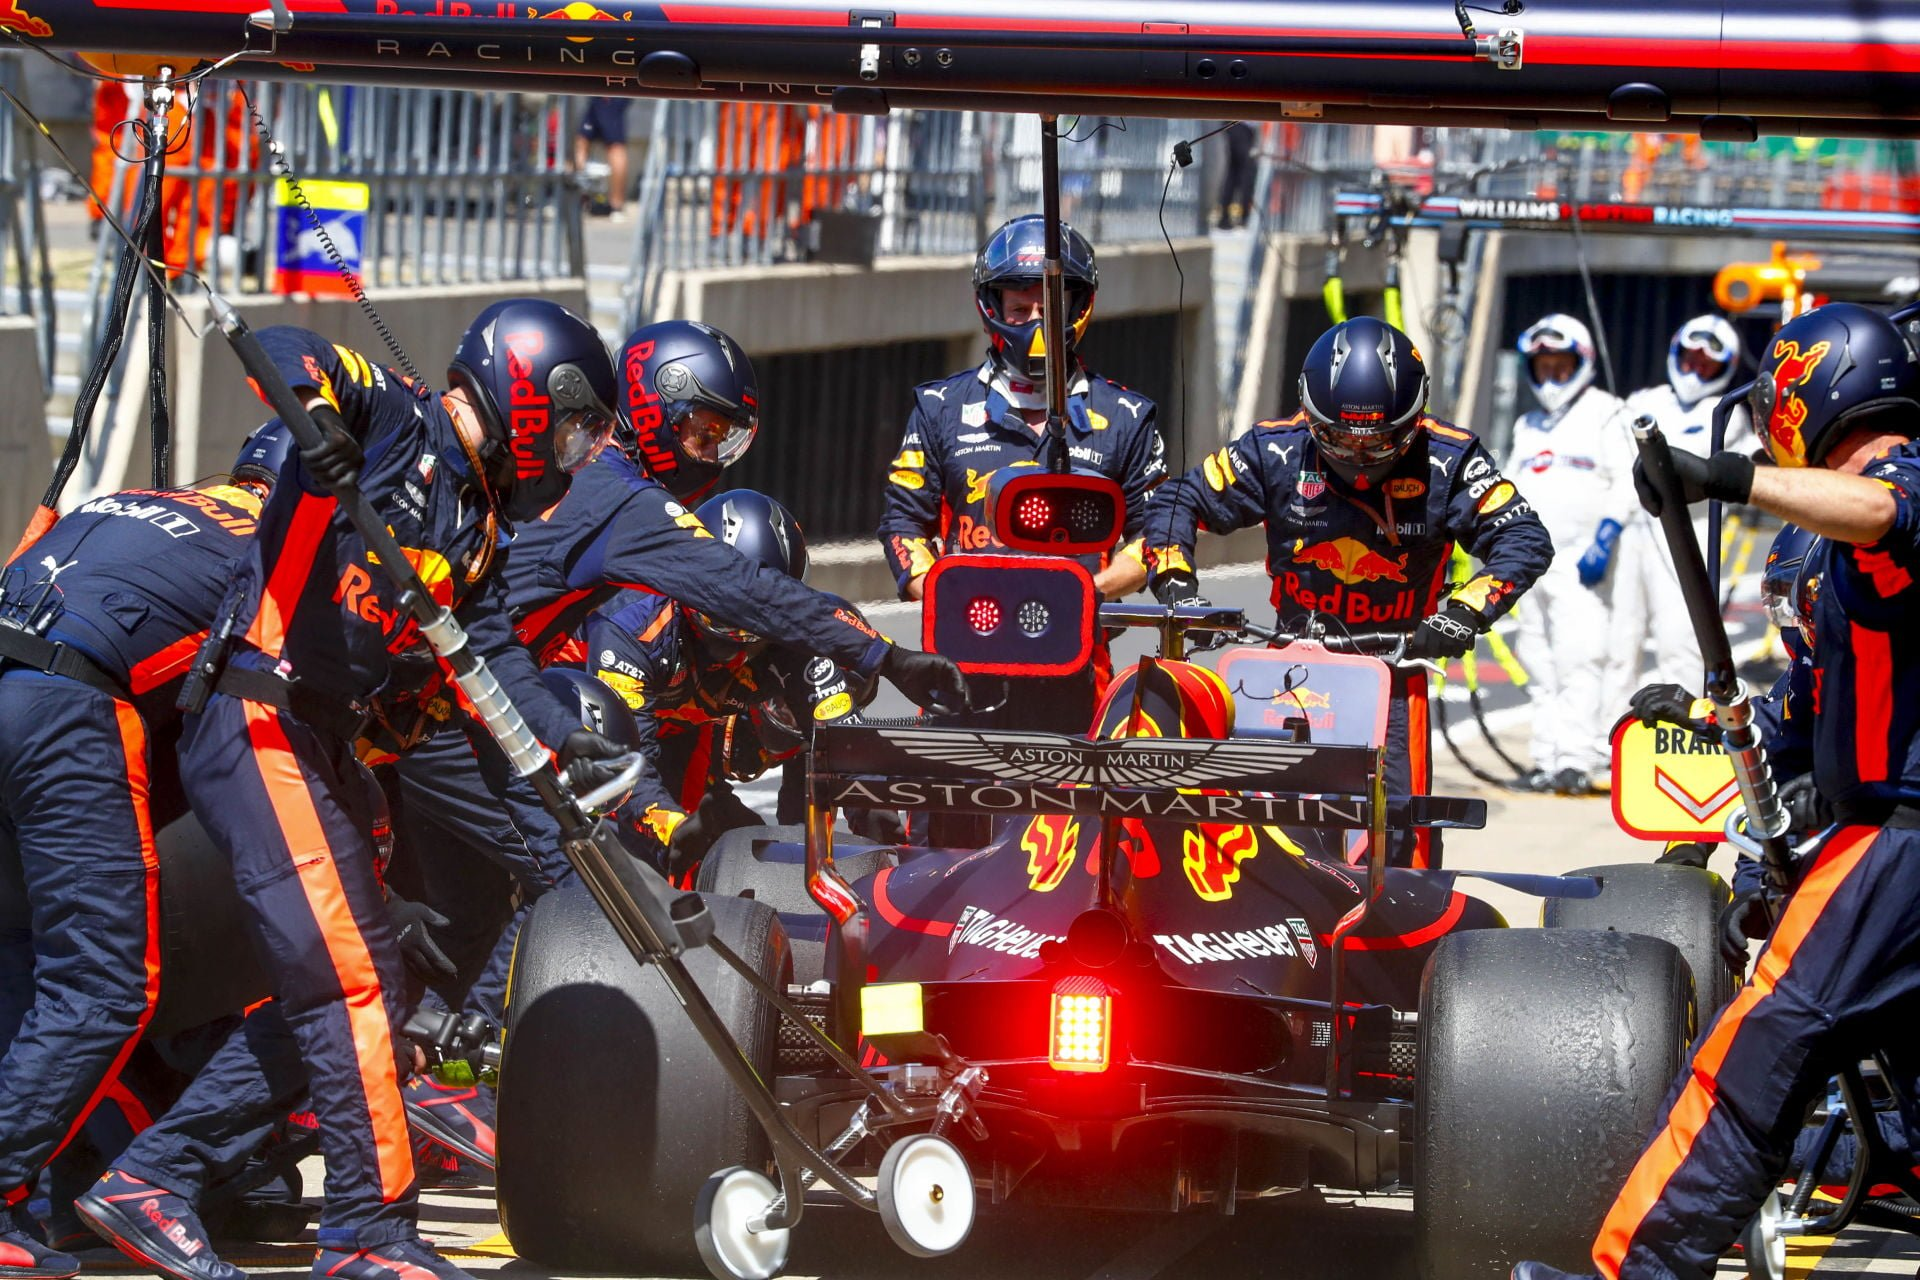 July 8, 2018 - Silverstone, Great Britain - Motorsports: FIA Formula One World Championship 2018, Grand Prix of Great Britain, .#3 Daniel Ricciardo (AUS, Aston Martin Red Bull Racing) (Credit Image: © Hoch Zwei via ZUMA Wire) FORMULA 1 GRAND PRIX WIELKIEJ BRYTANII FOT.ZUMA/NEWSPIX.PL POLAND ONLY!!! --- Newspix.pl *** Local Caption *** www.newspix.pl mail us: info@newspix.pl call us: 0048 022 23 22 222 --- Polish Picture Agency by Ringier Axel Springer Poland